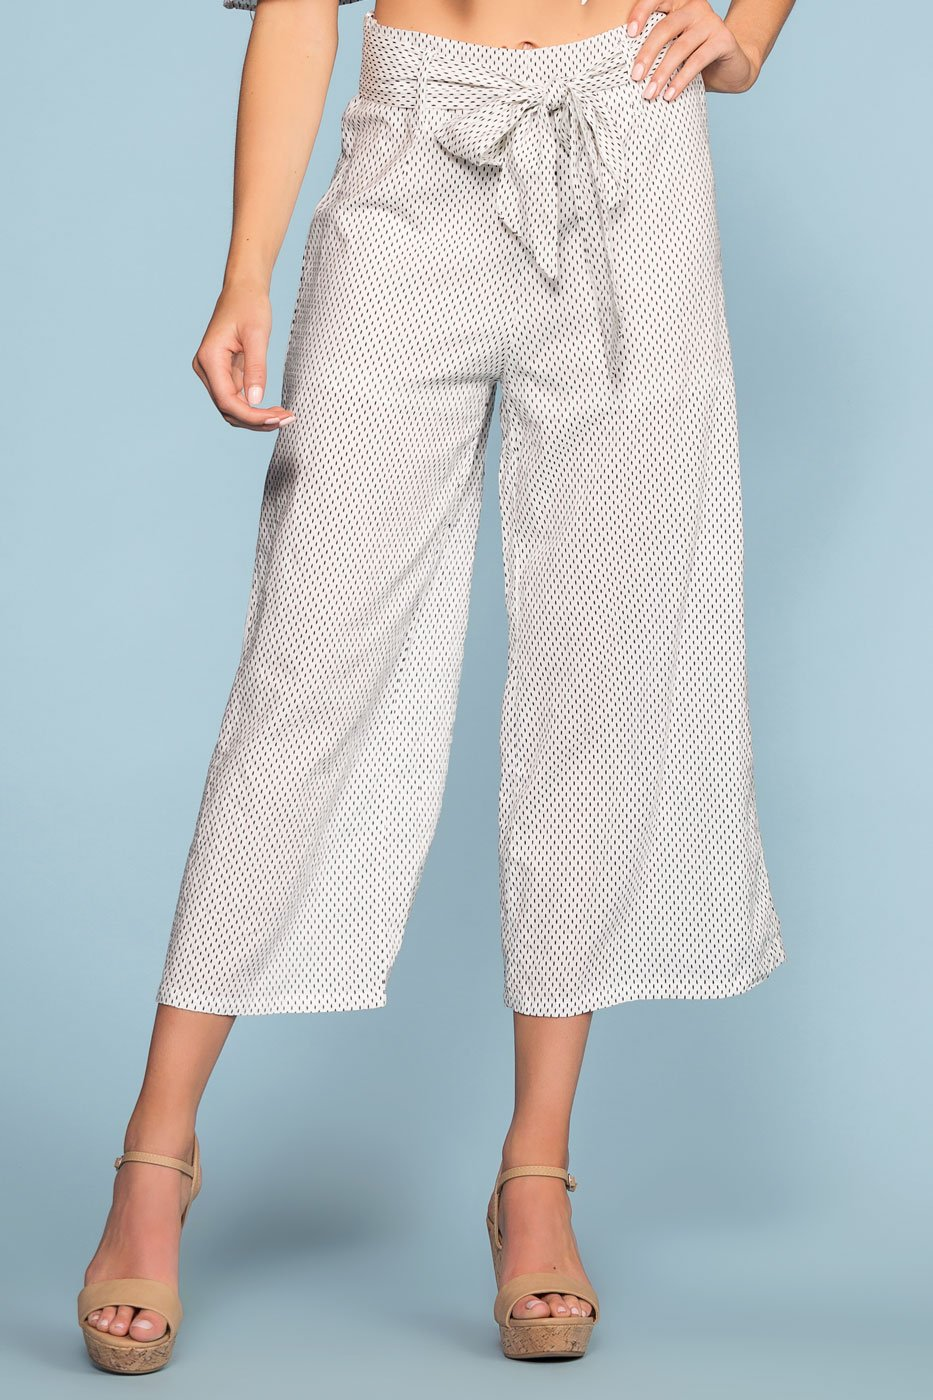 Dotted White High Waist Pants